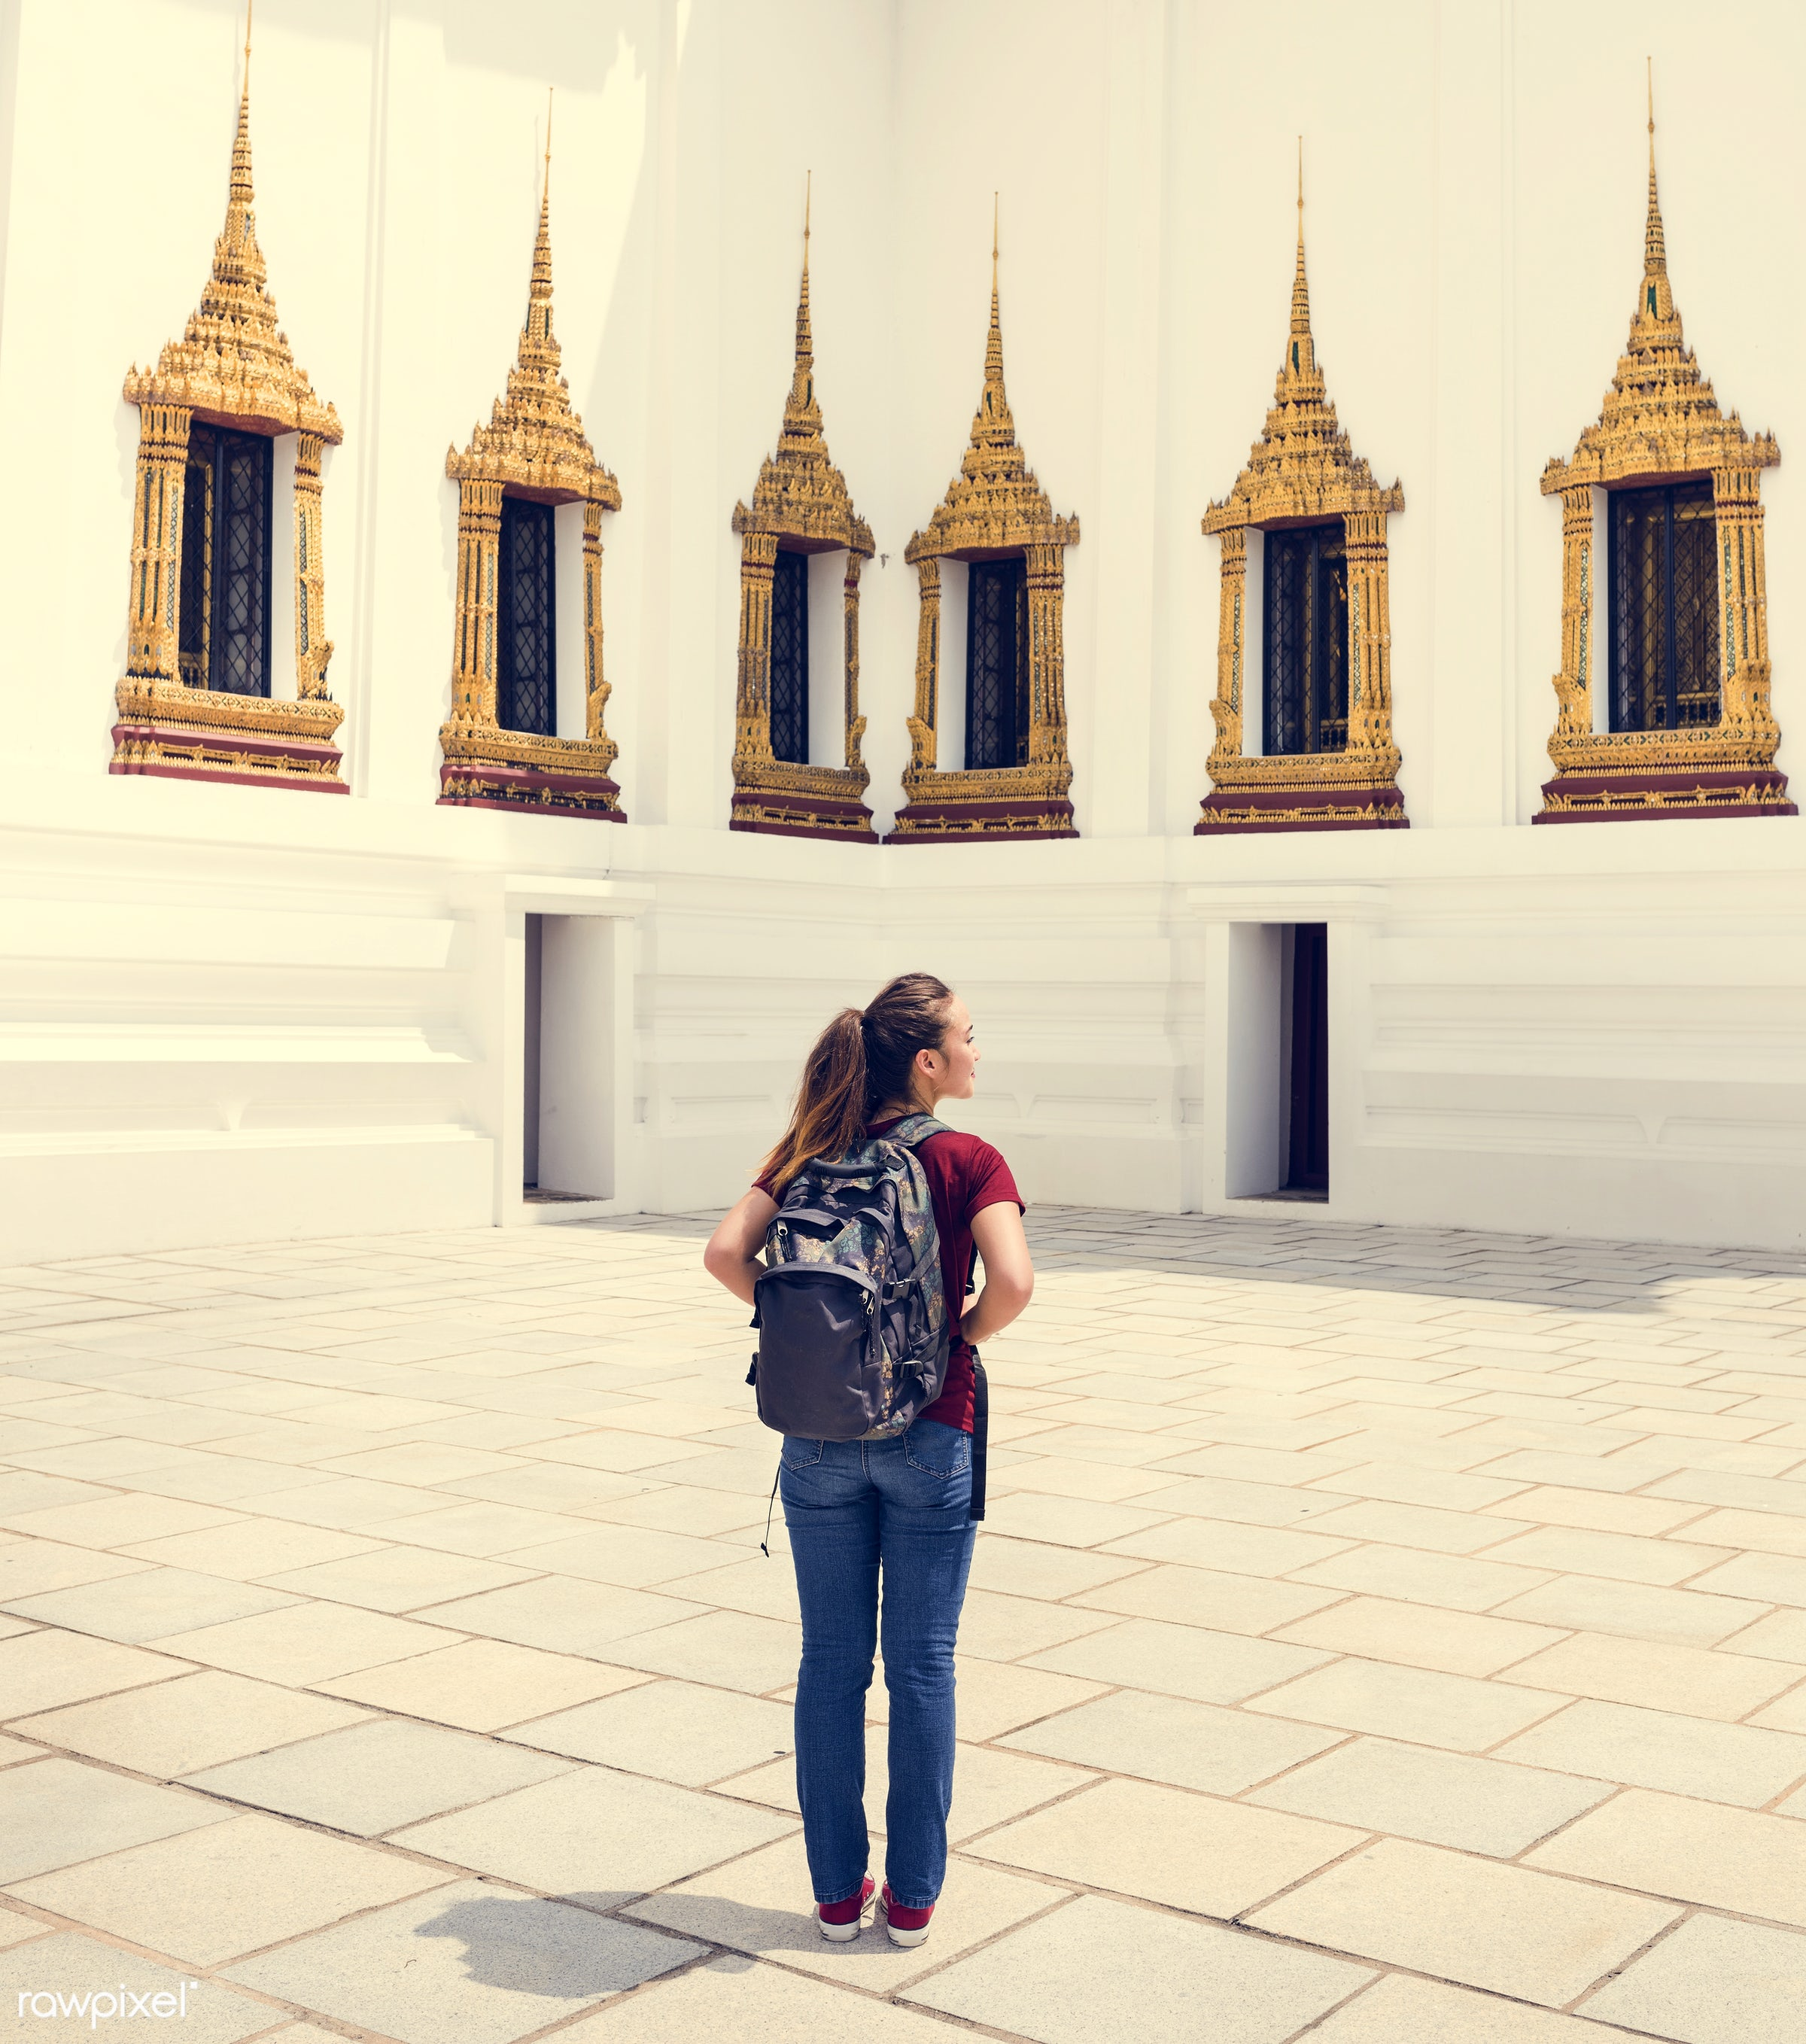 Young woman traveling through Thailand - activity, adventure, ancient, architecture, asia, asian ethnicity, bangkok, buddha...